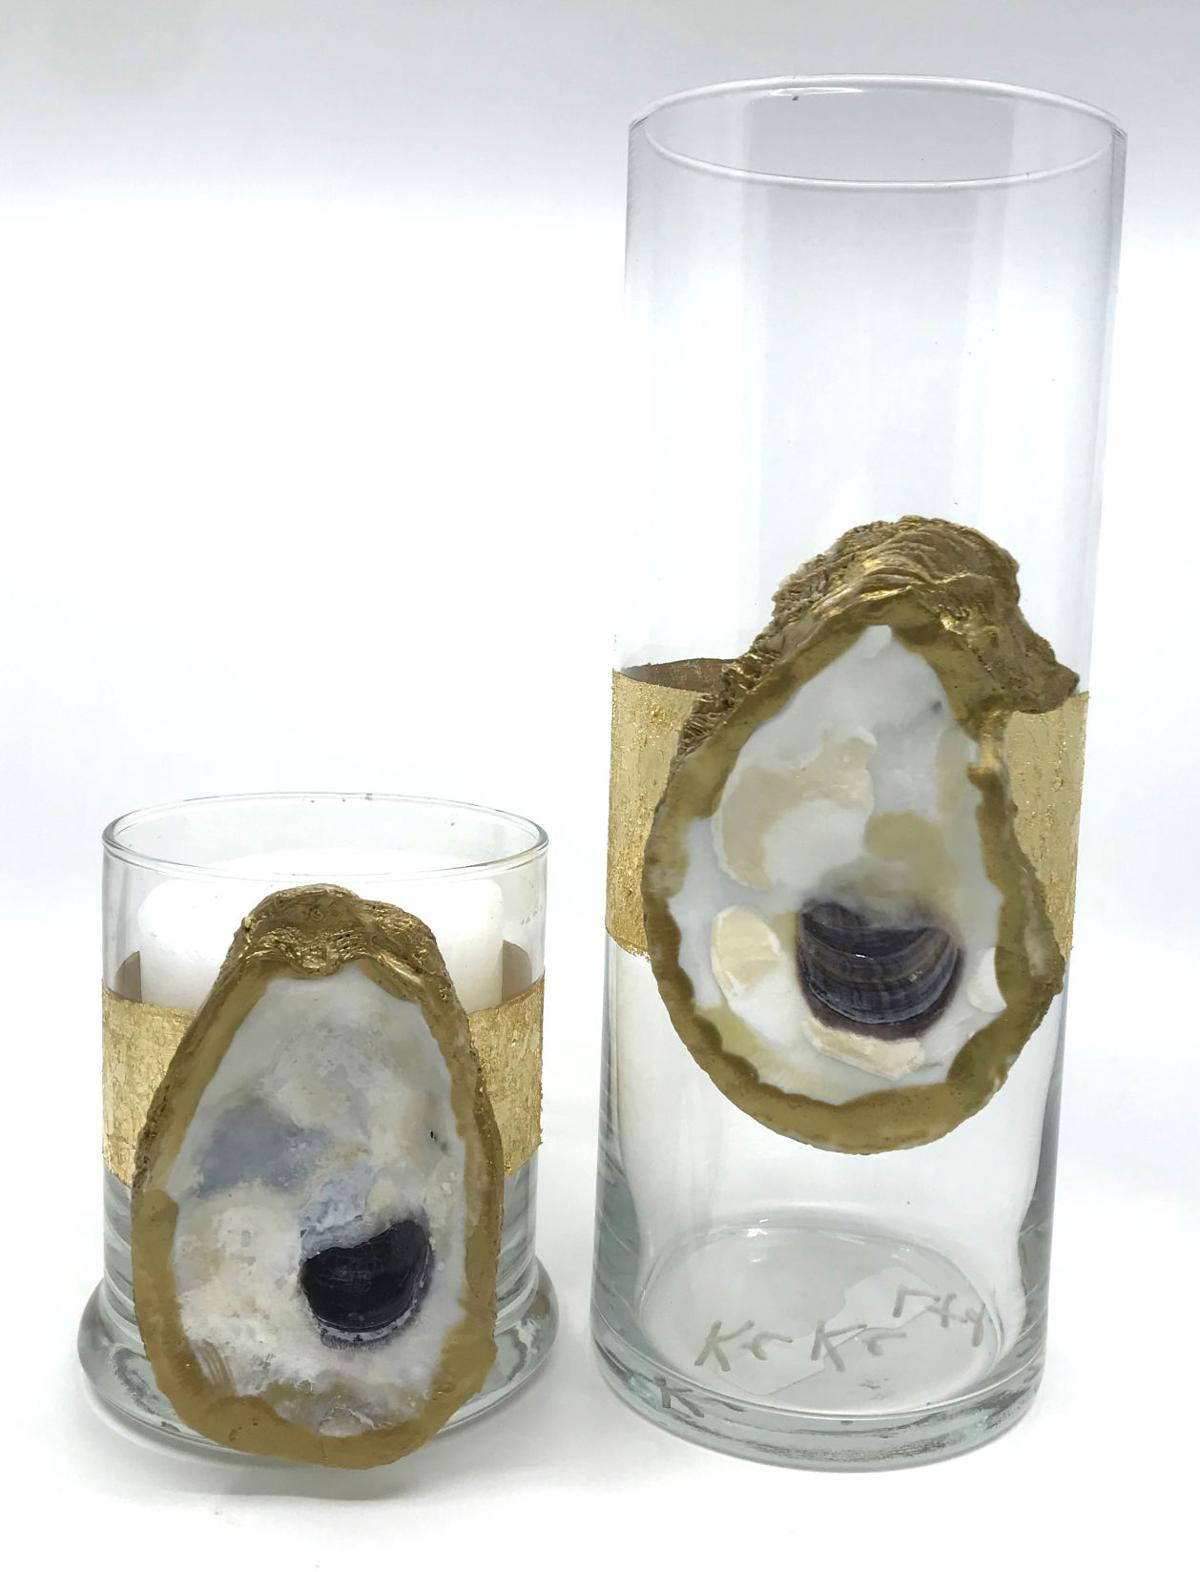 OYSTER O2. Miss Smarty Pants oyster candle + jpg.jpg